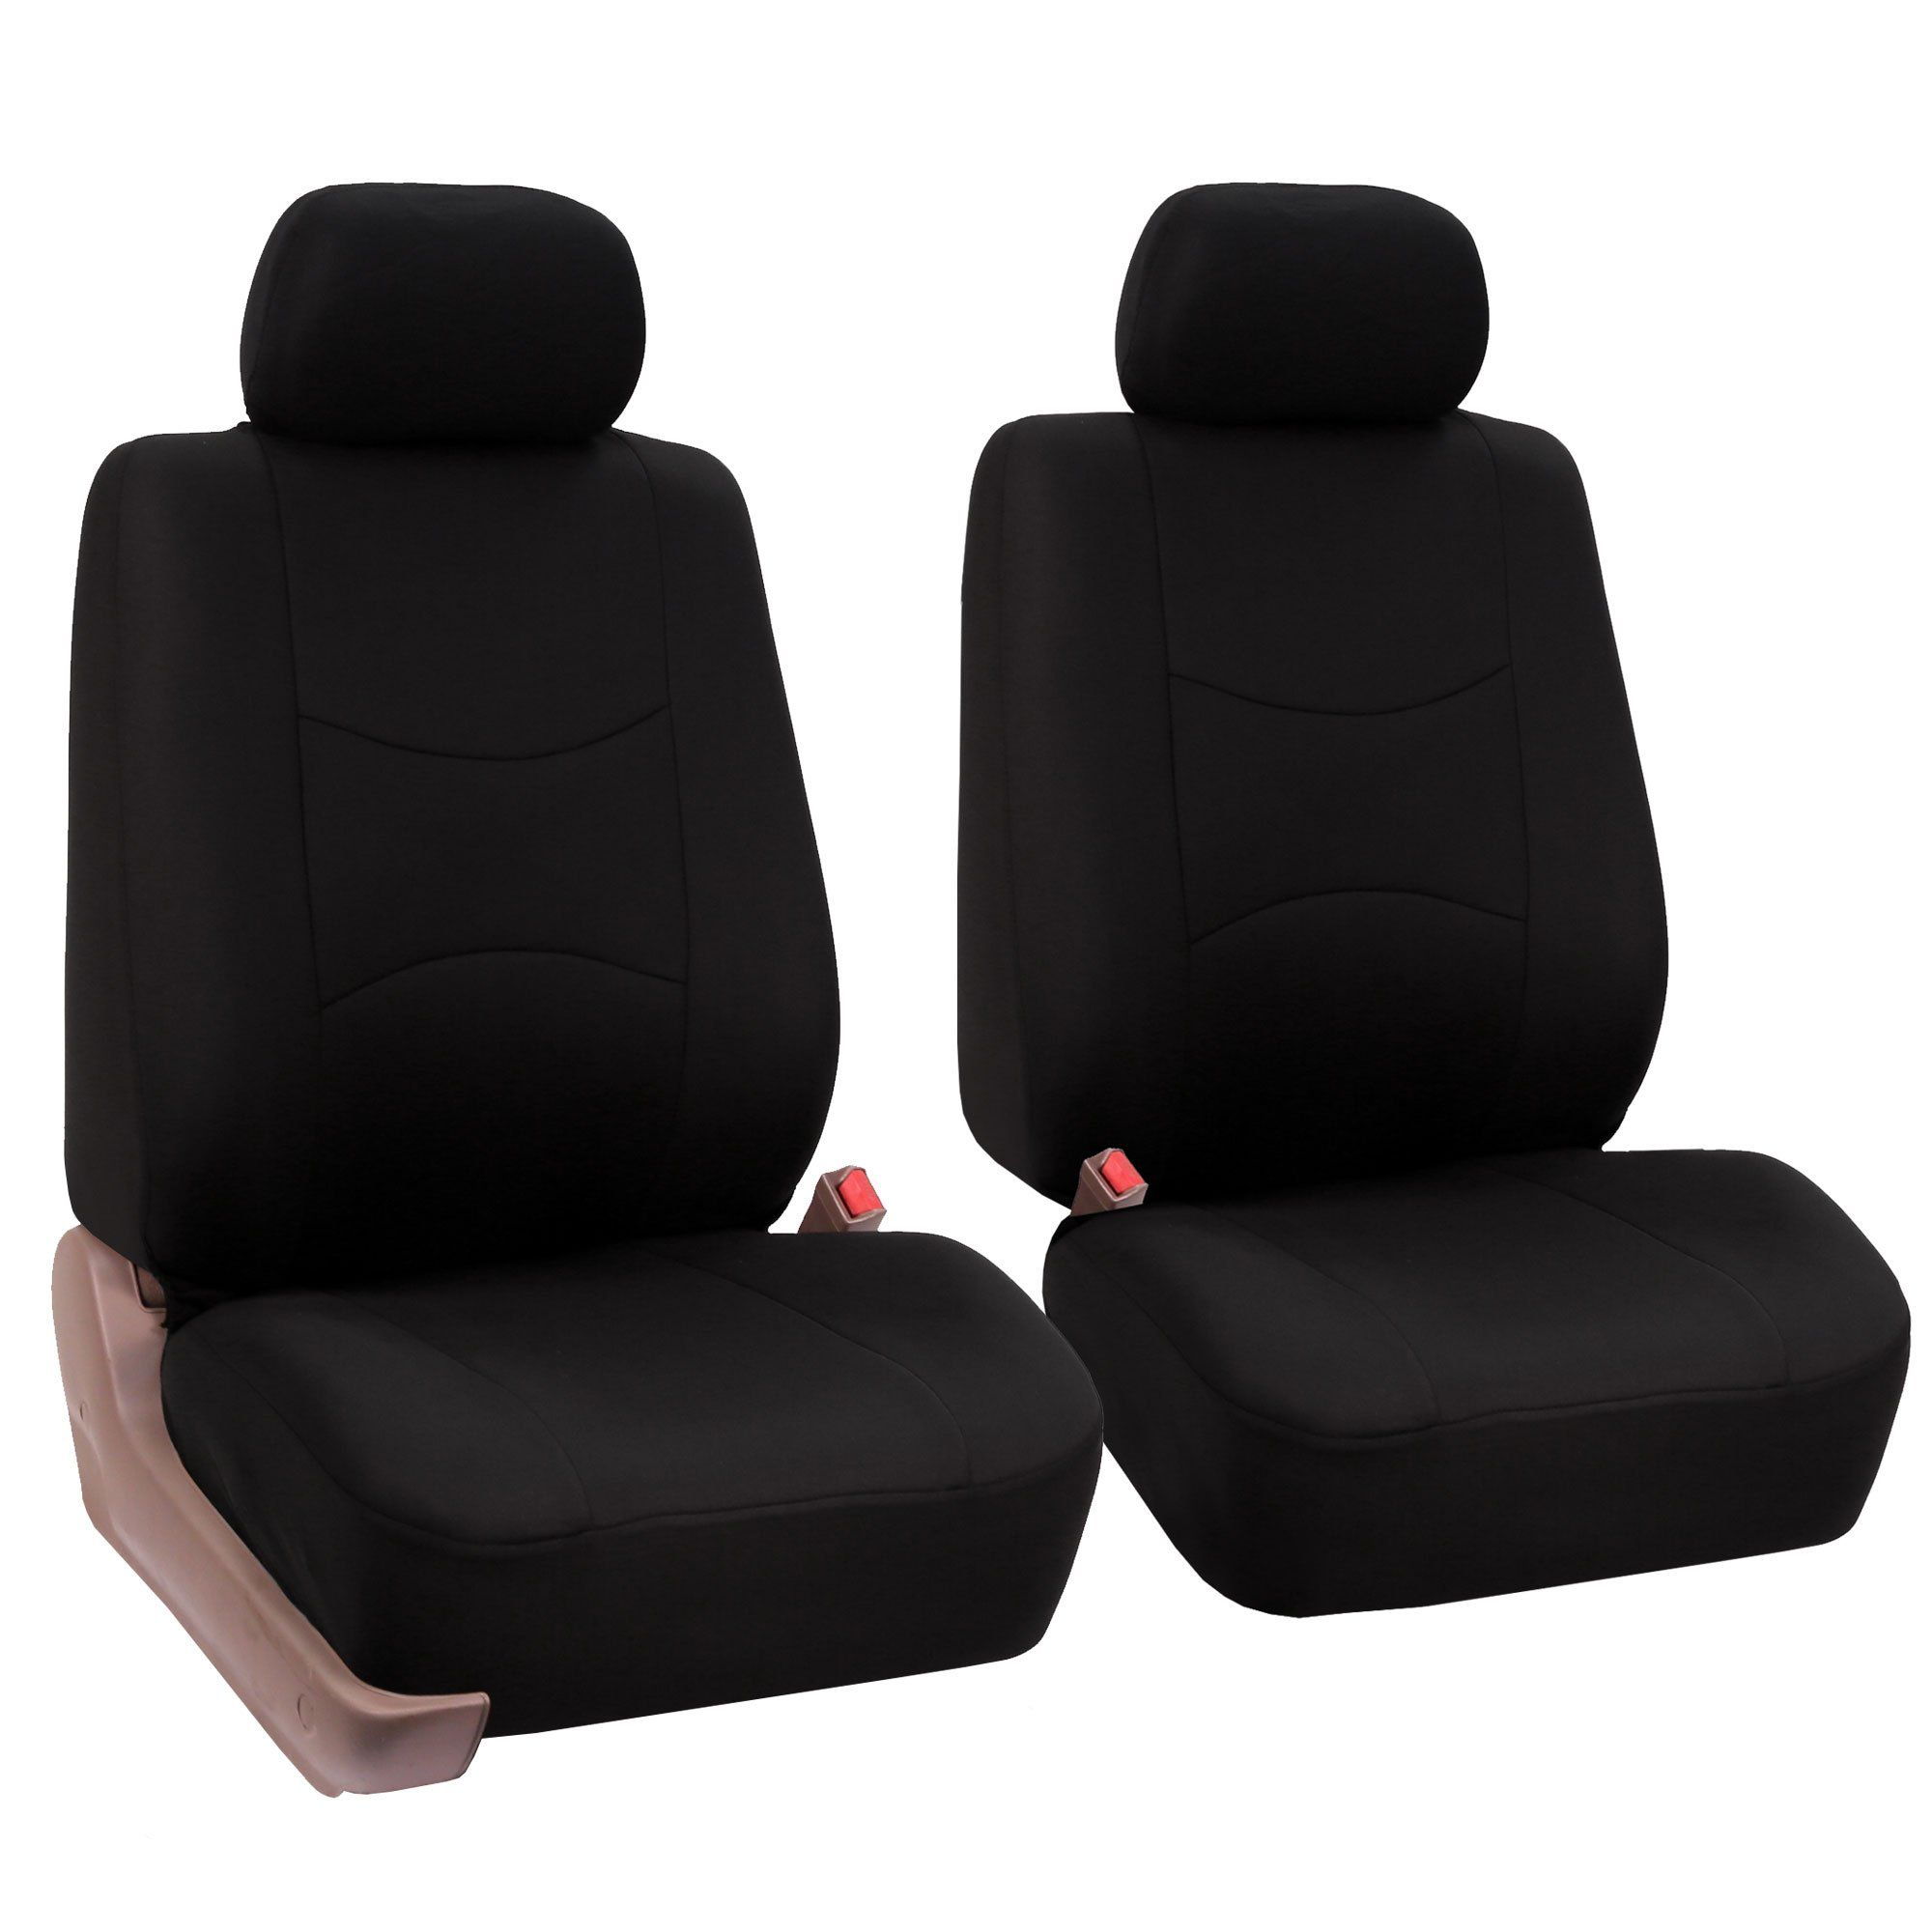 CAR PASS Universal fit for vehicle Neoprene waterproof beige auto car seat cover